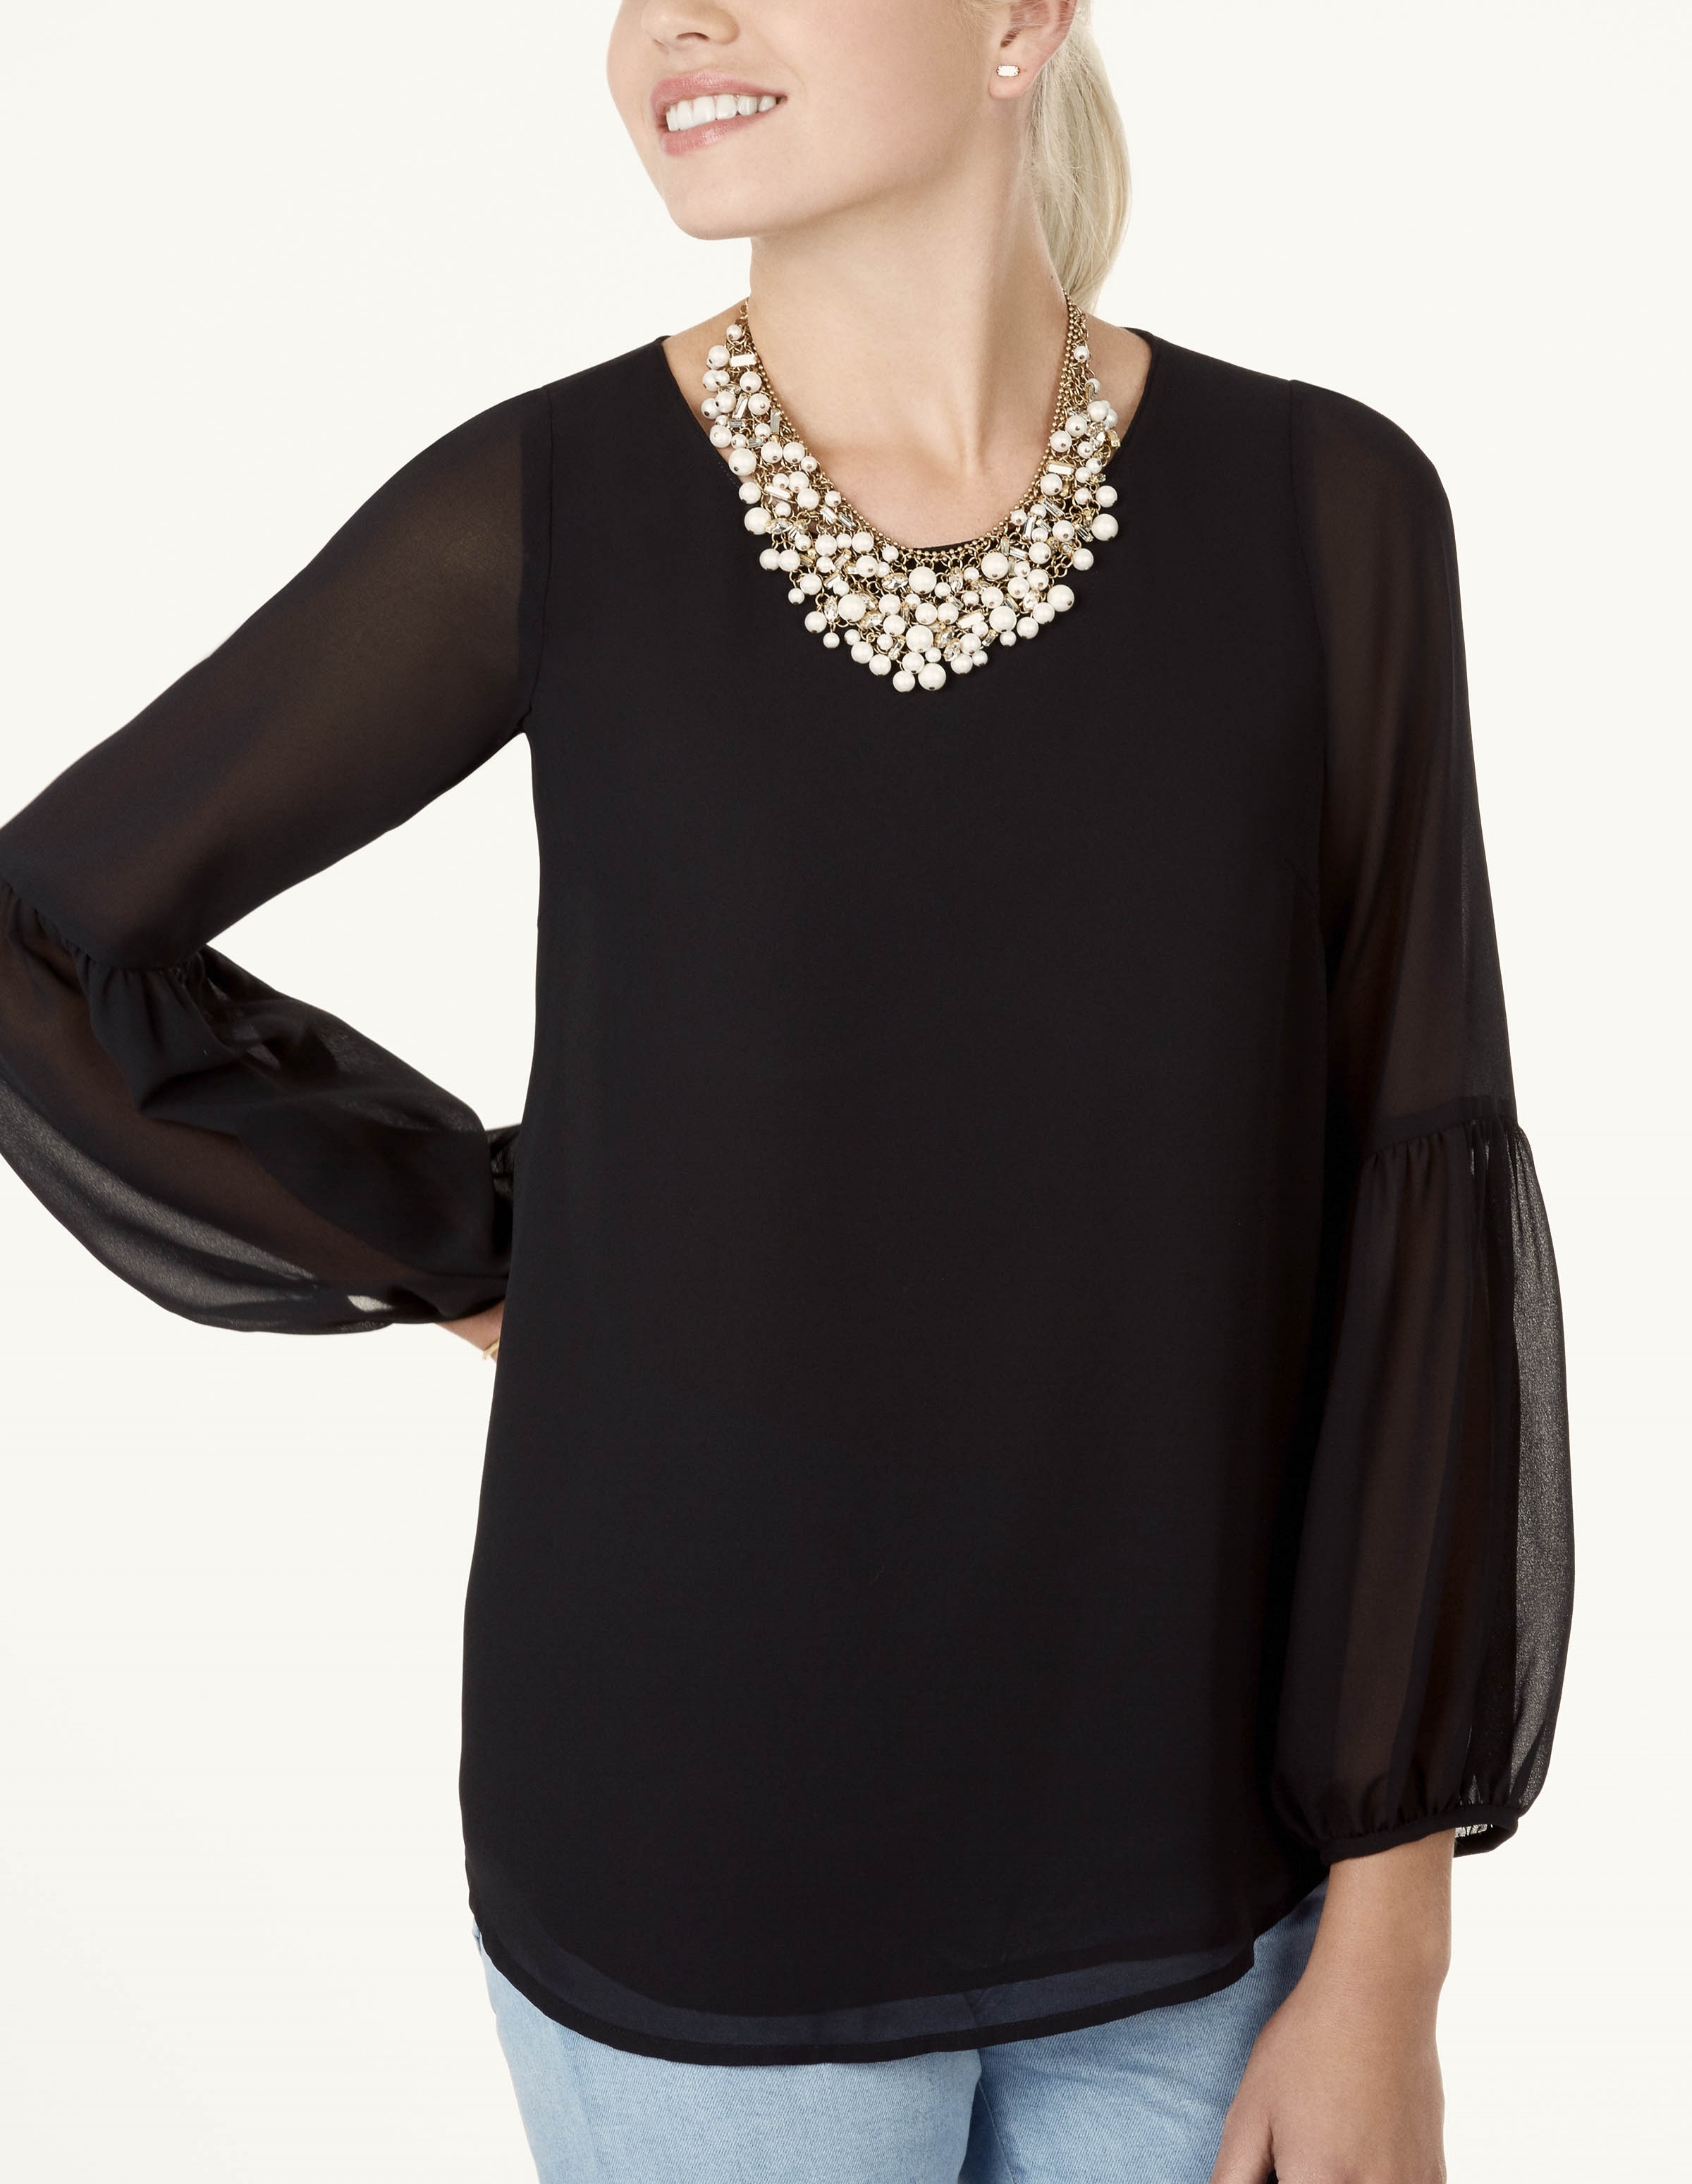 3. The Sophie Top - Remember the printed Sophie that made it's debut last month? Well this is her older sister. The Sophie in black is such a classic wardrobe staple because it's really like a blank canvas. You can wear just about any kind of accessory with it and you will always be on trend. Pair it with a statement necklace like pictured to the left for a bolder look, or pair it down with delicate layers. The slightly sheer sleeve is perfect for to day-to-night dressing.